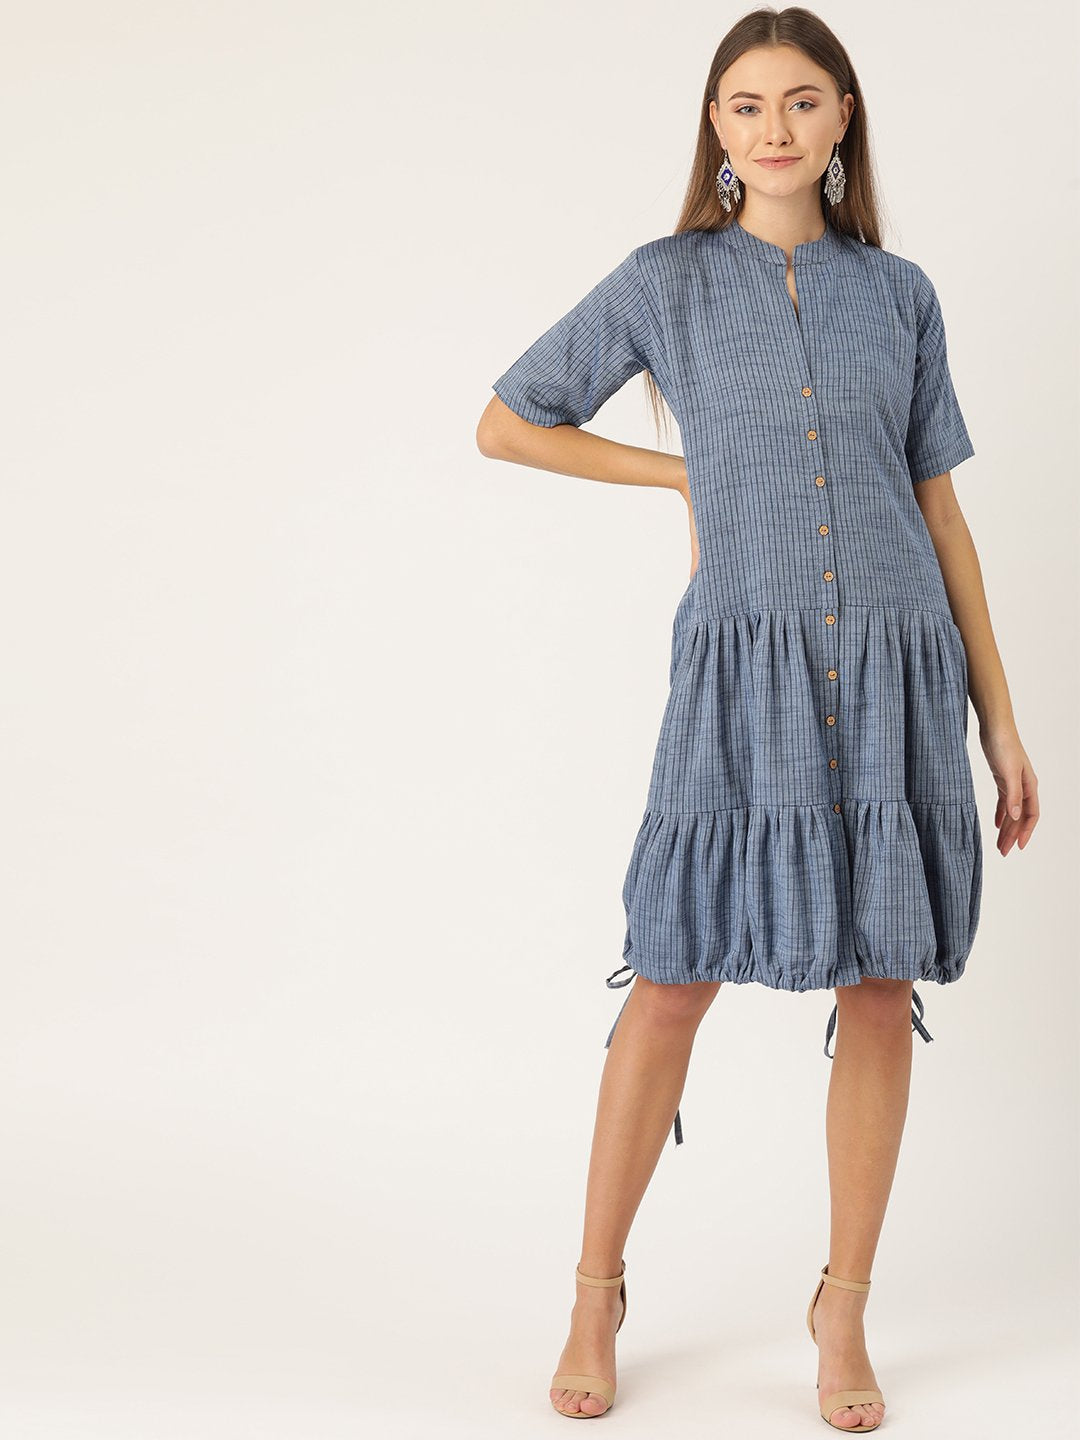 Dress In Denim Blue